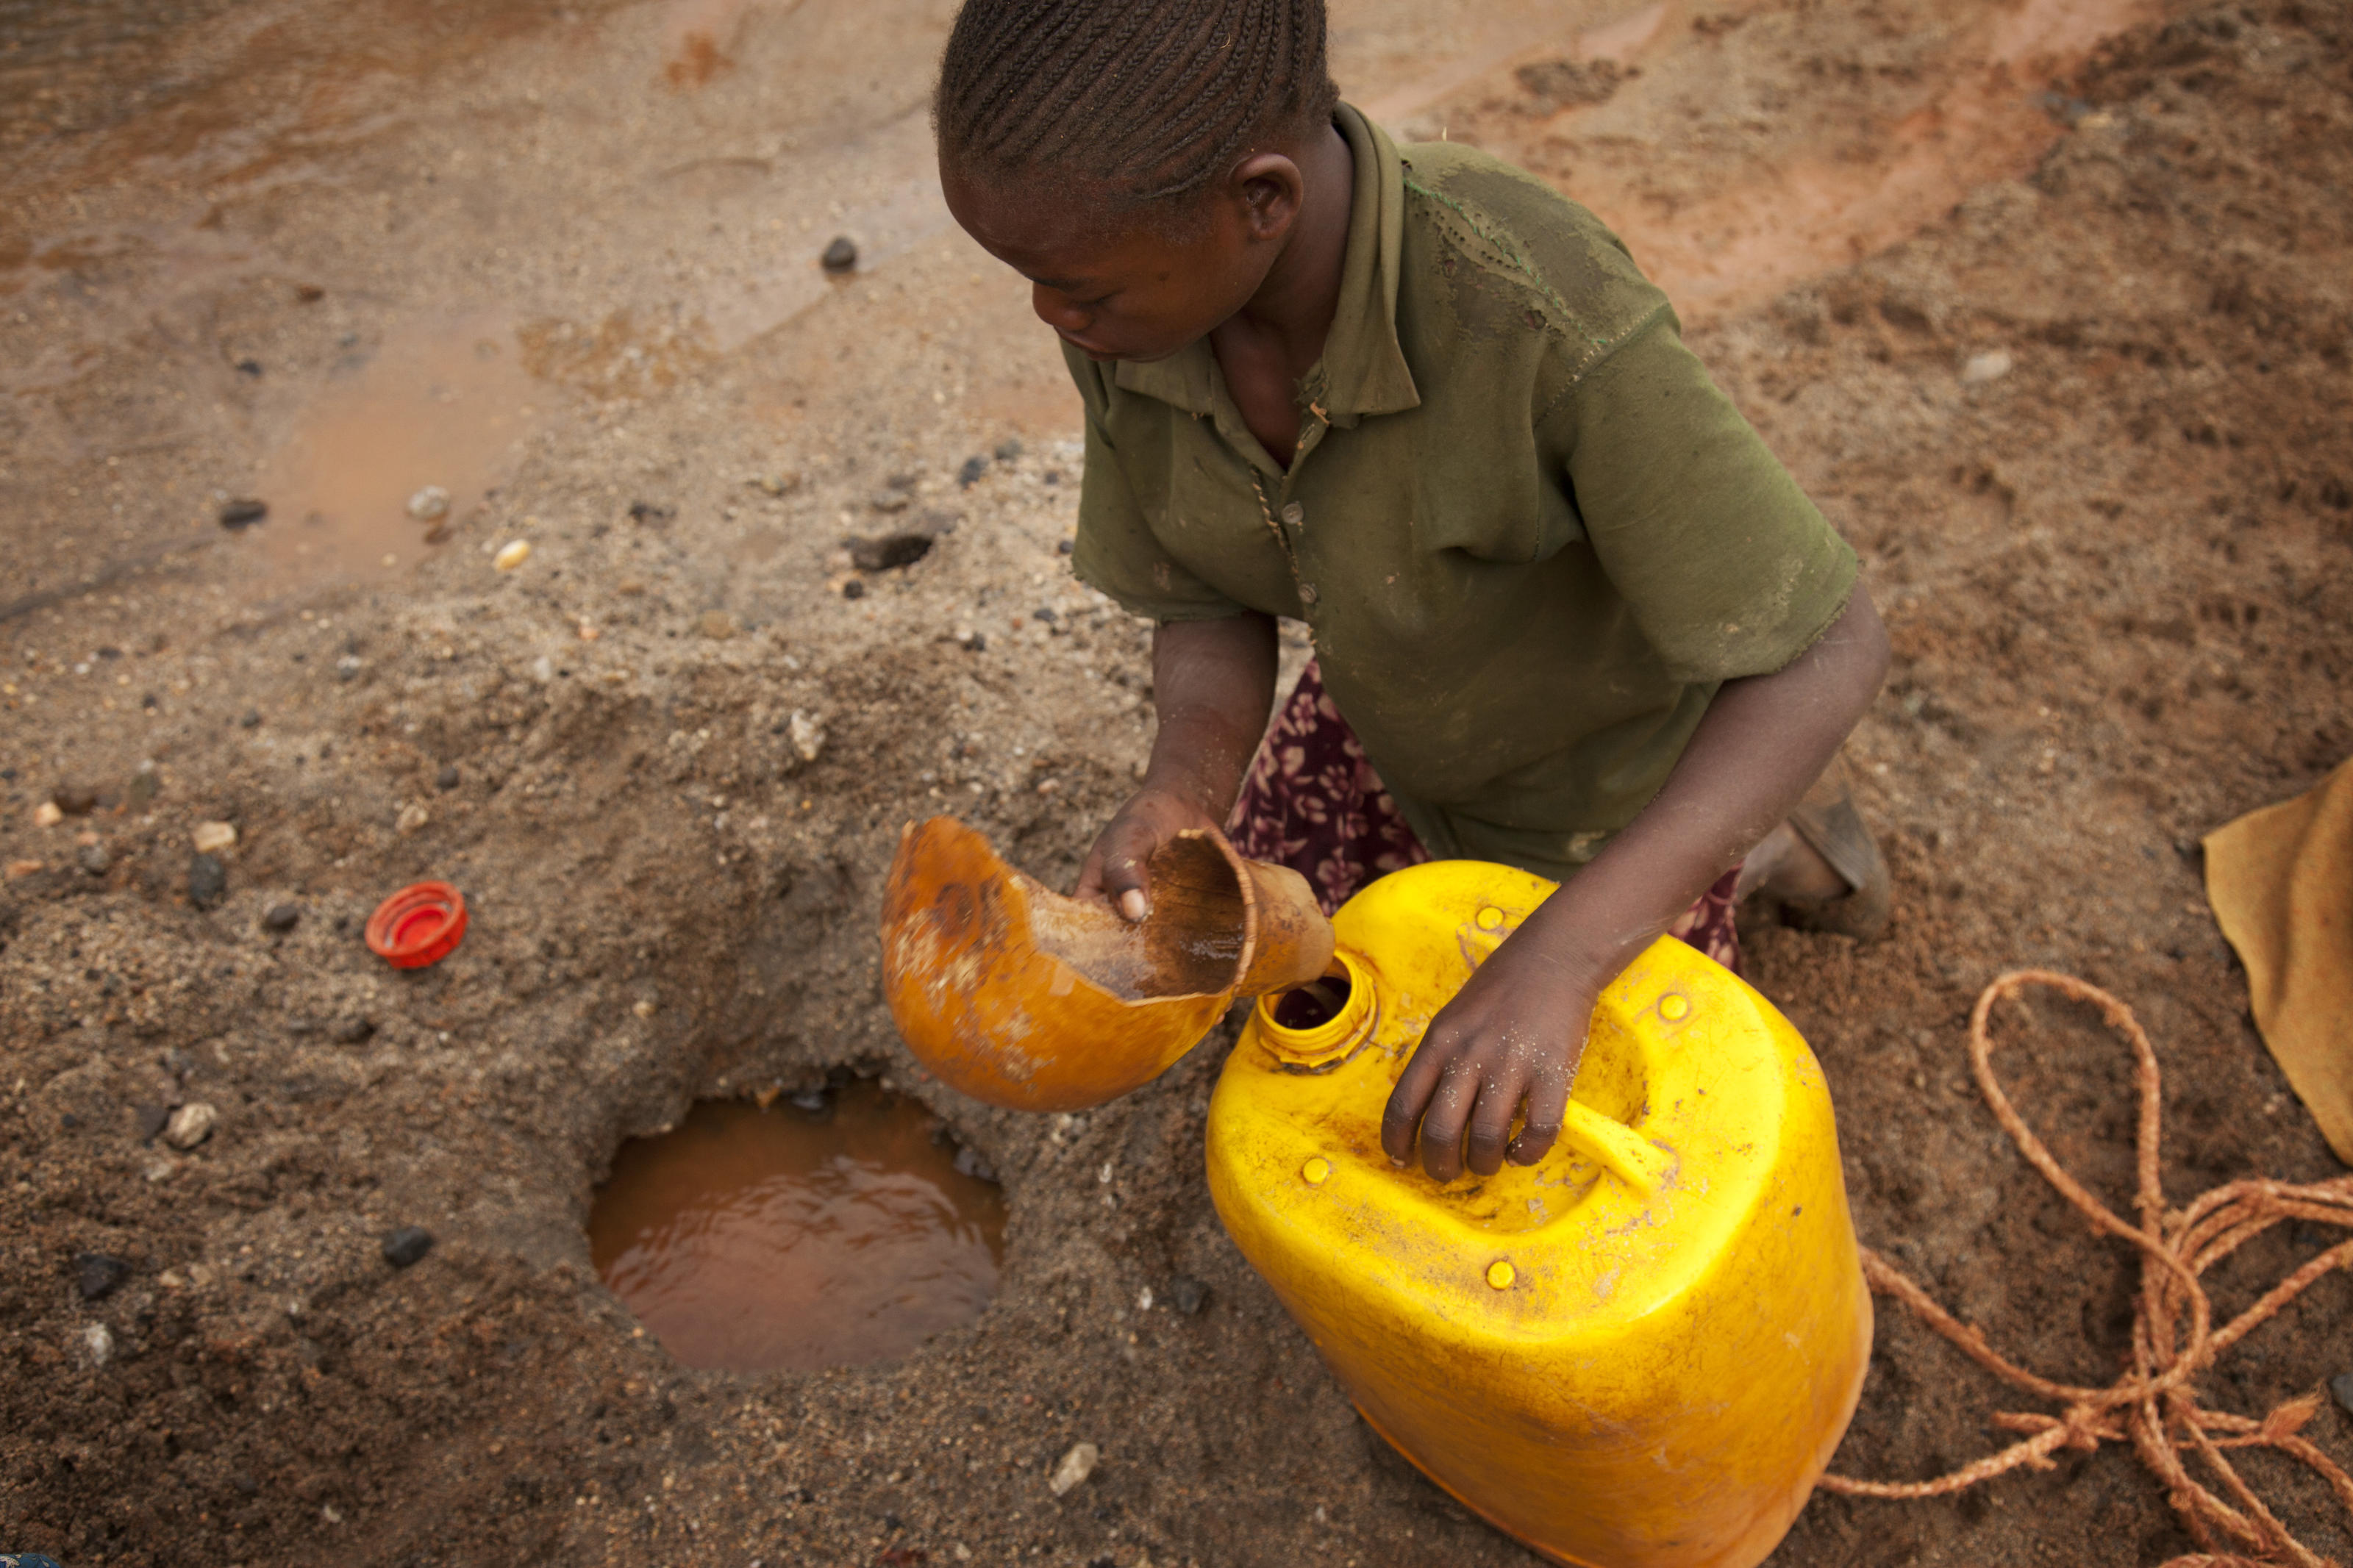 Kawesa Kalabo, around 13, using a calabash to scoop dirty water from the ground, Lahyte, Ethiopia, 2012.